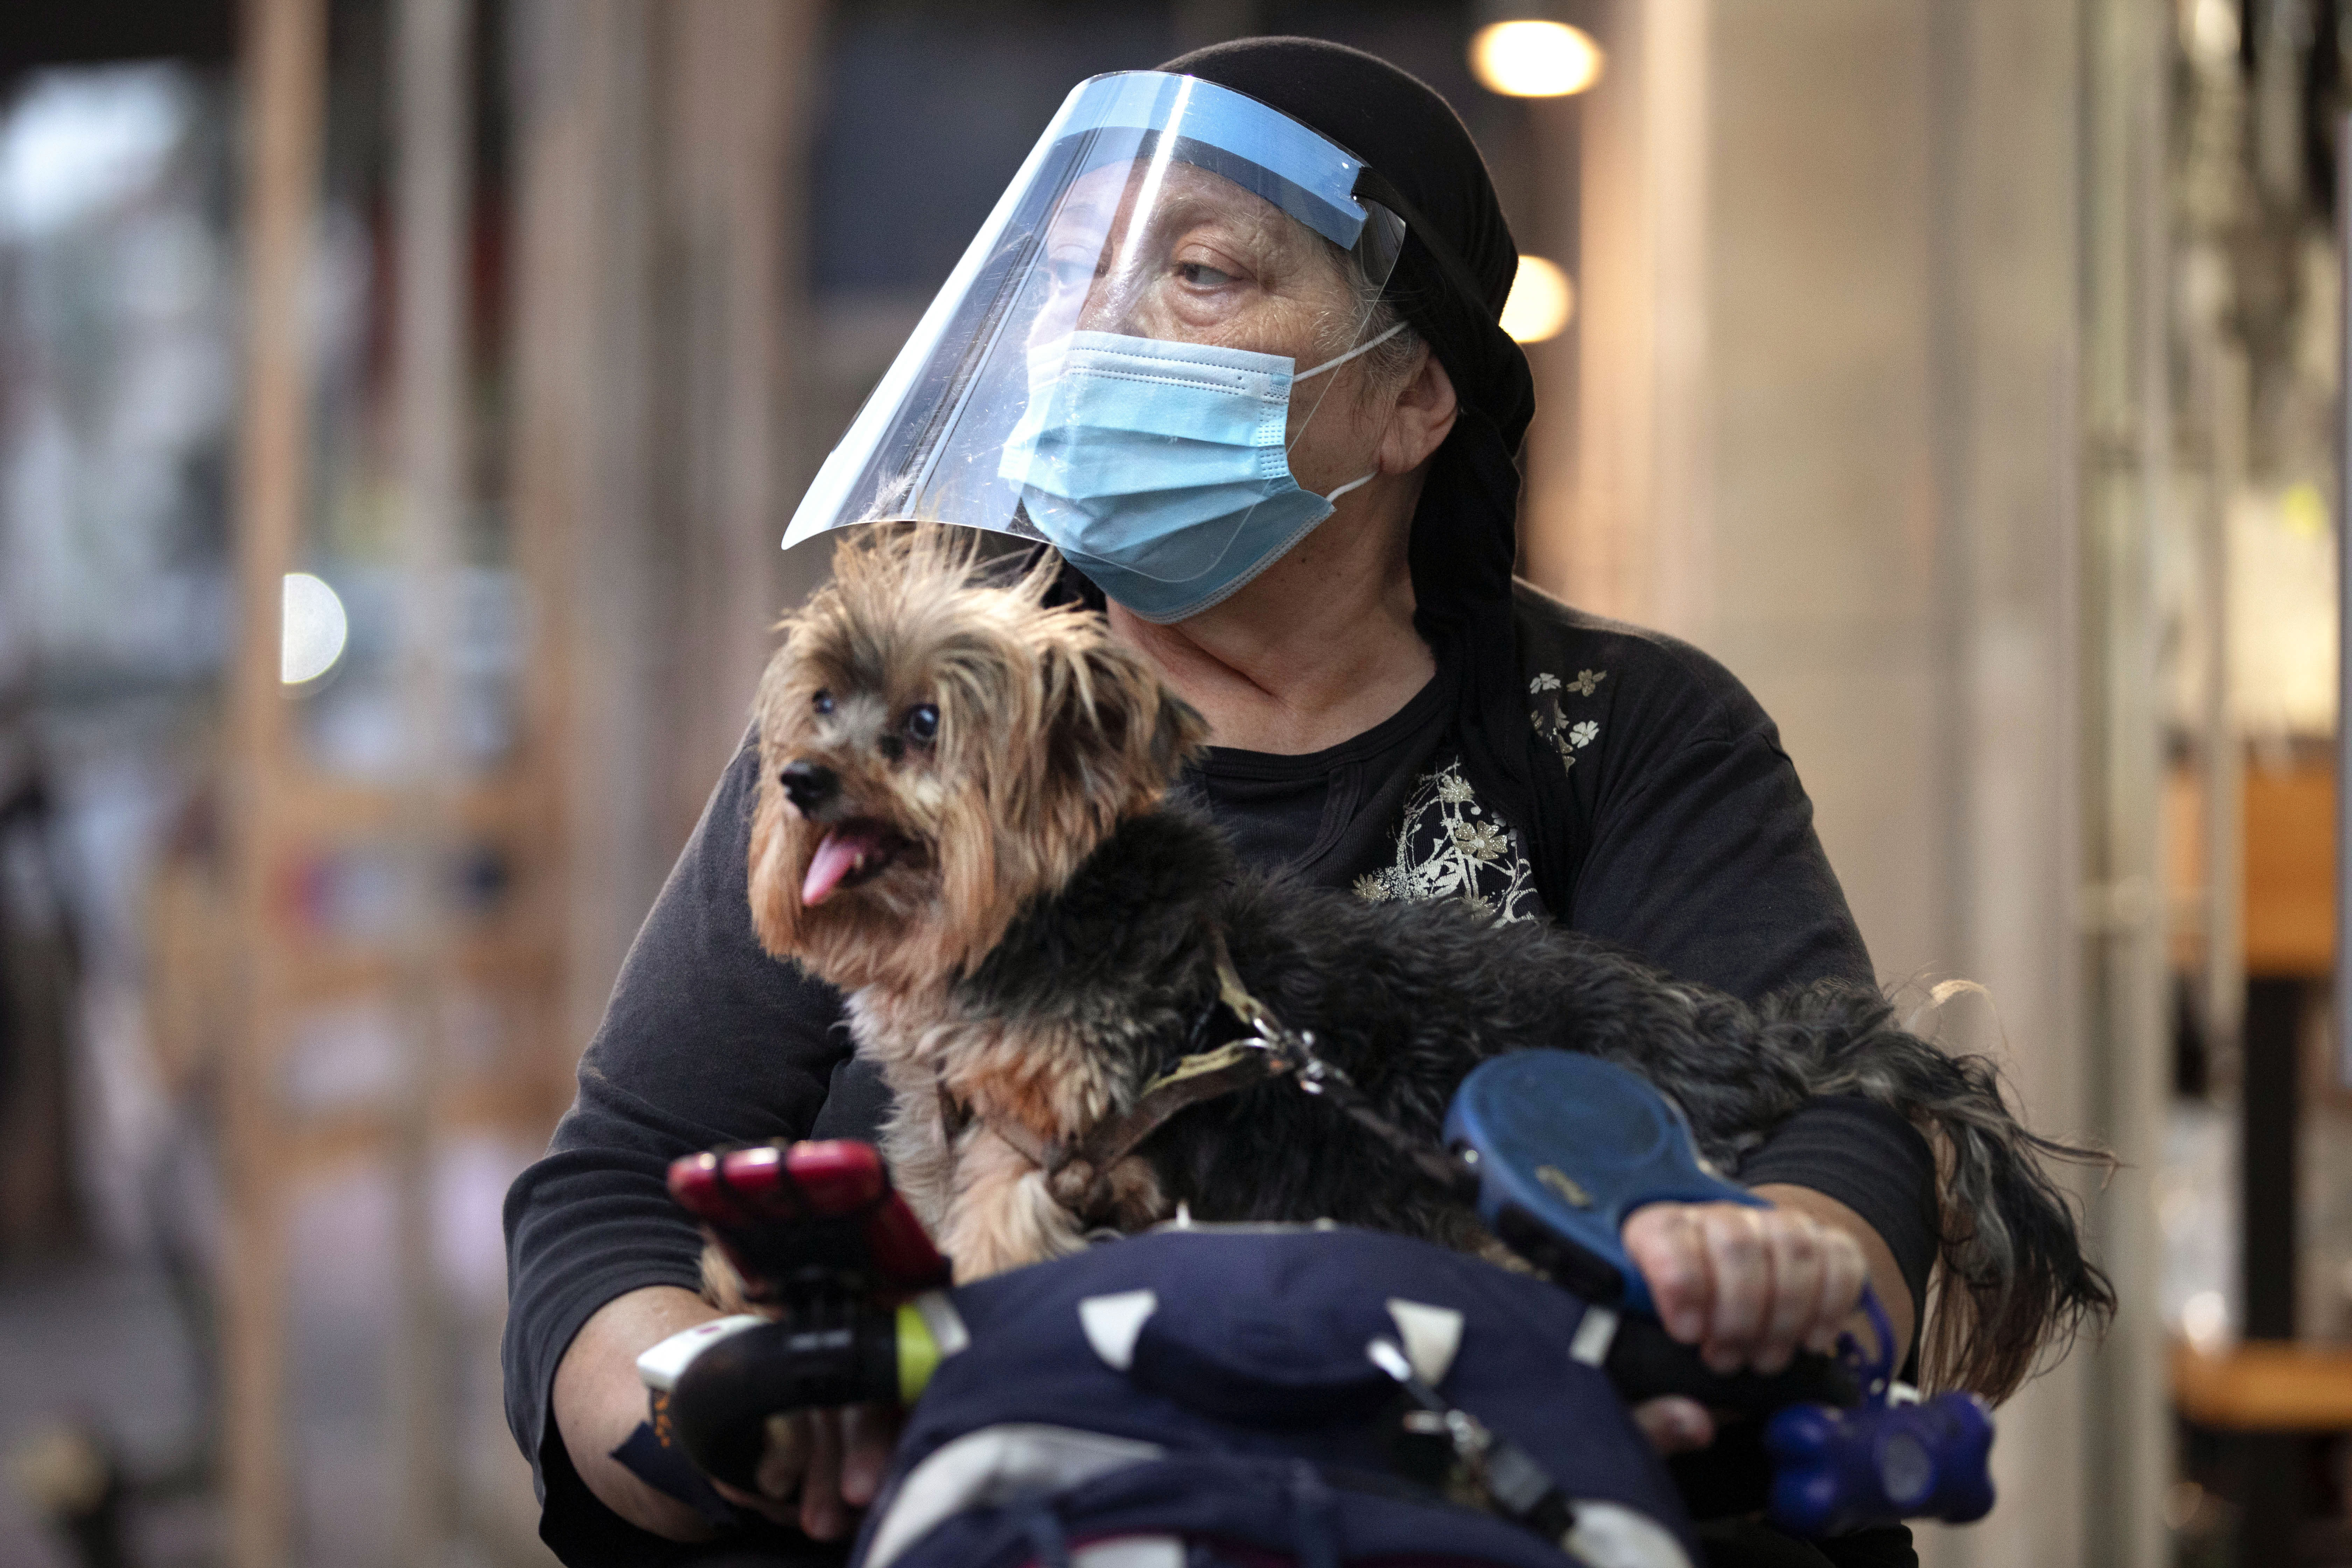 An ultra-Orthodox Jewish woman wearing a face mask and shield amid the coronavirus pandemic, rides her mobility scooter with her dog, in Bnei Brak, Israel, Tuesday, Sept 8, 2020. Israel has tightened restrictions on 40 Israeli cities and towns with worrying outbreaks, imposing nighttime curfews, and shutting down schools. After appearing to contain an earlier outbreak in the spring, Israel now has one of the world's worst outbreaks, adjusted for population. (AP Photo/Oded Balilty)